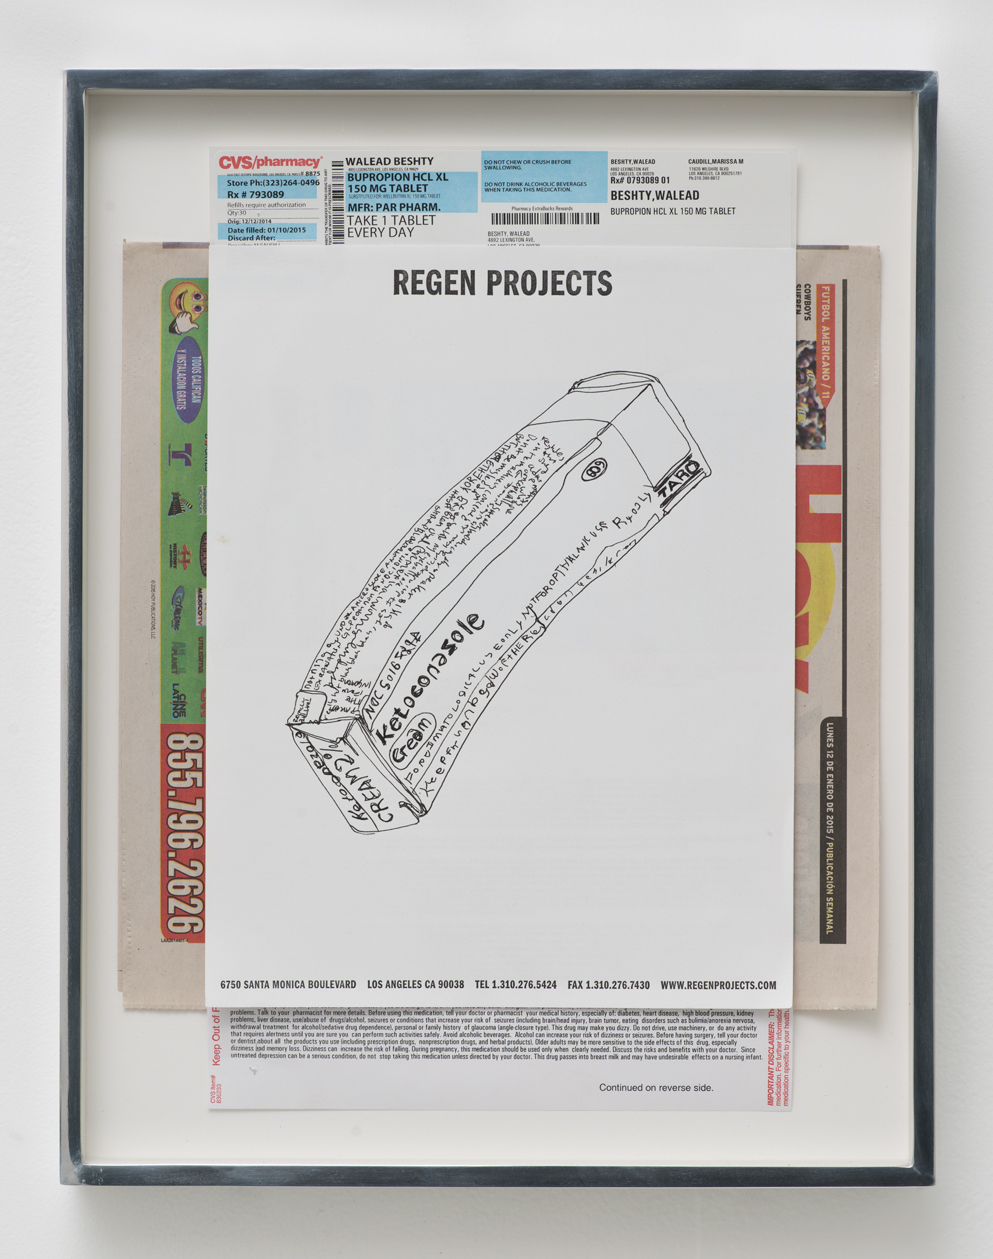 Ketoconazole 2%, 60 g, Cream, Taro Pharmaceutical Industries, Ltd.: Regen Projects, Los Angeles, California, January 12, 2015    2015   Ink on letterhead, newspaper, ink on paper  15 x 11 1/2 inches   Walid AlBeshti, 2015